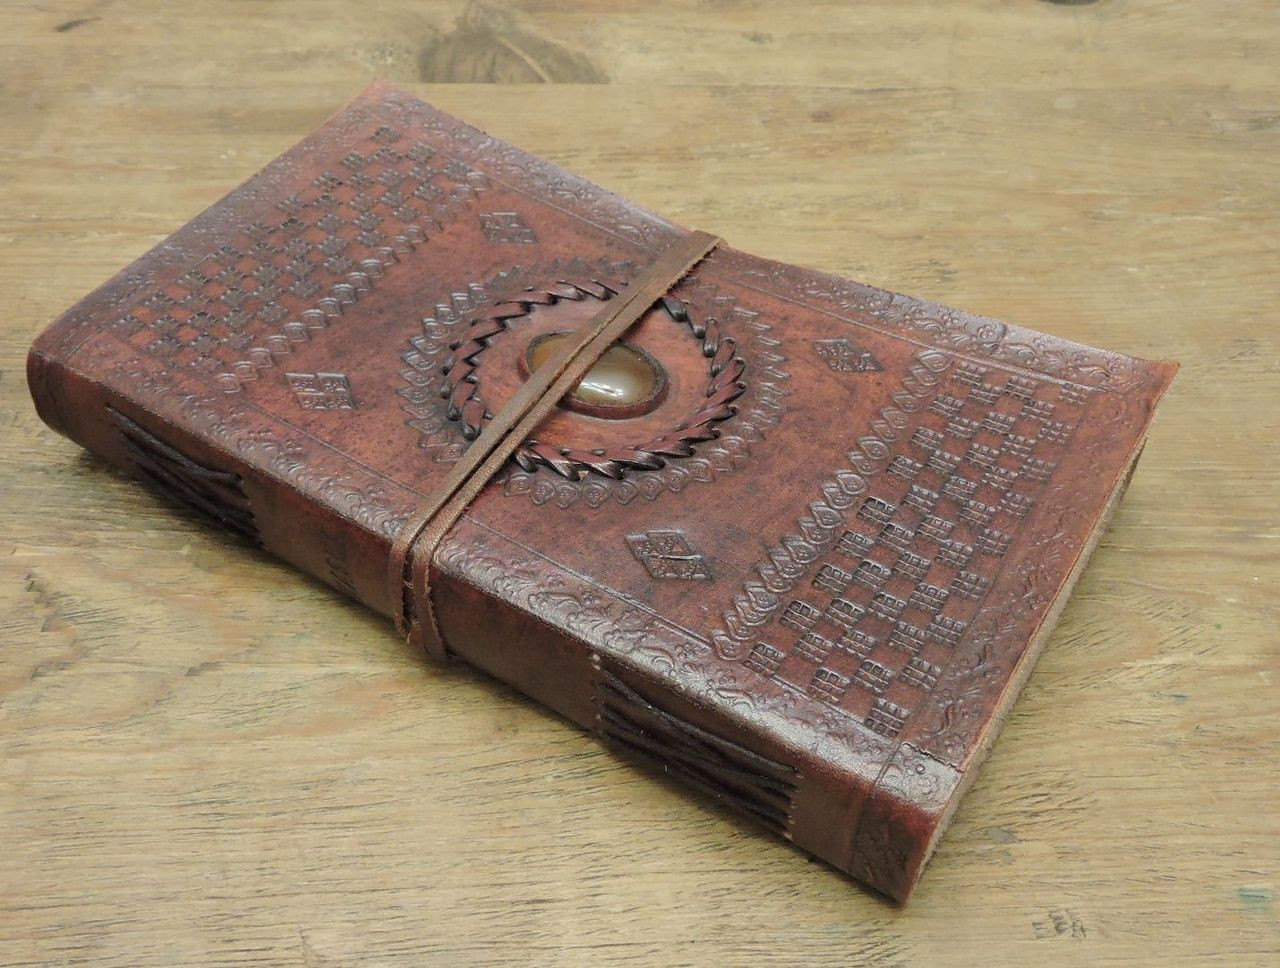 9 x 5 leather journal - old world style - side view